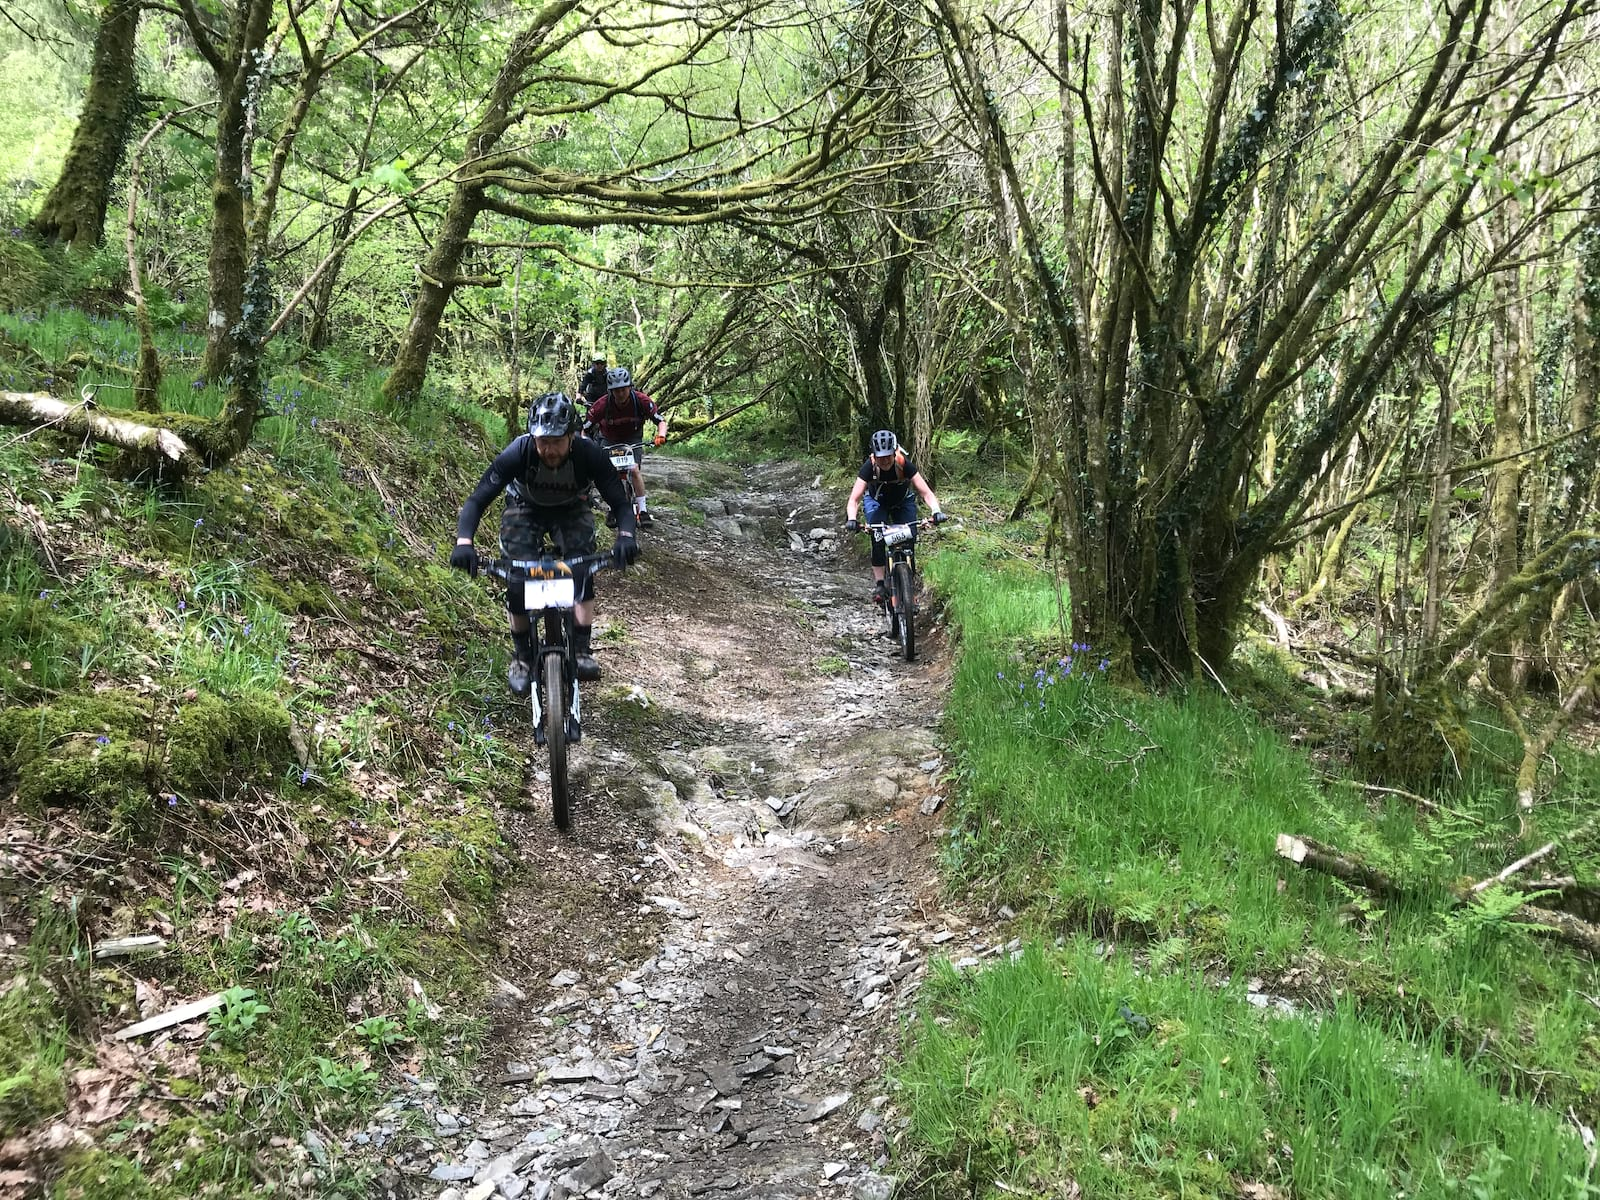 dyfi enduro descent